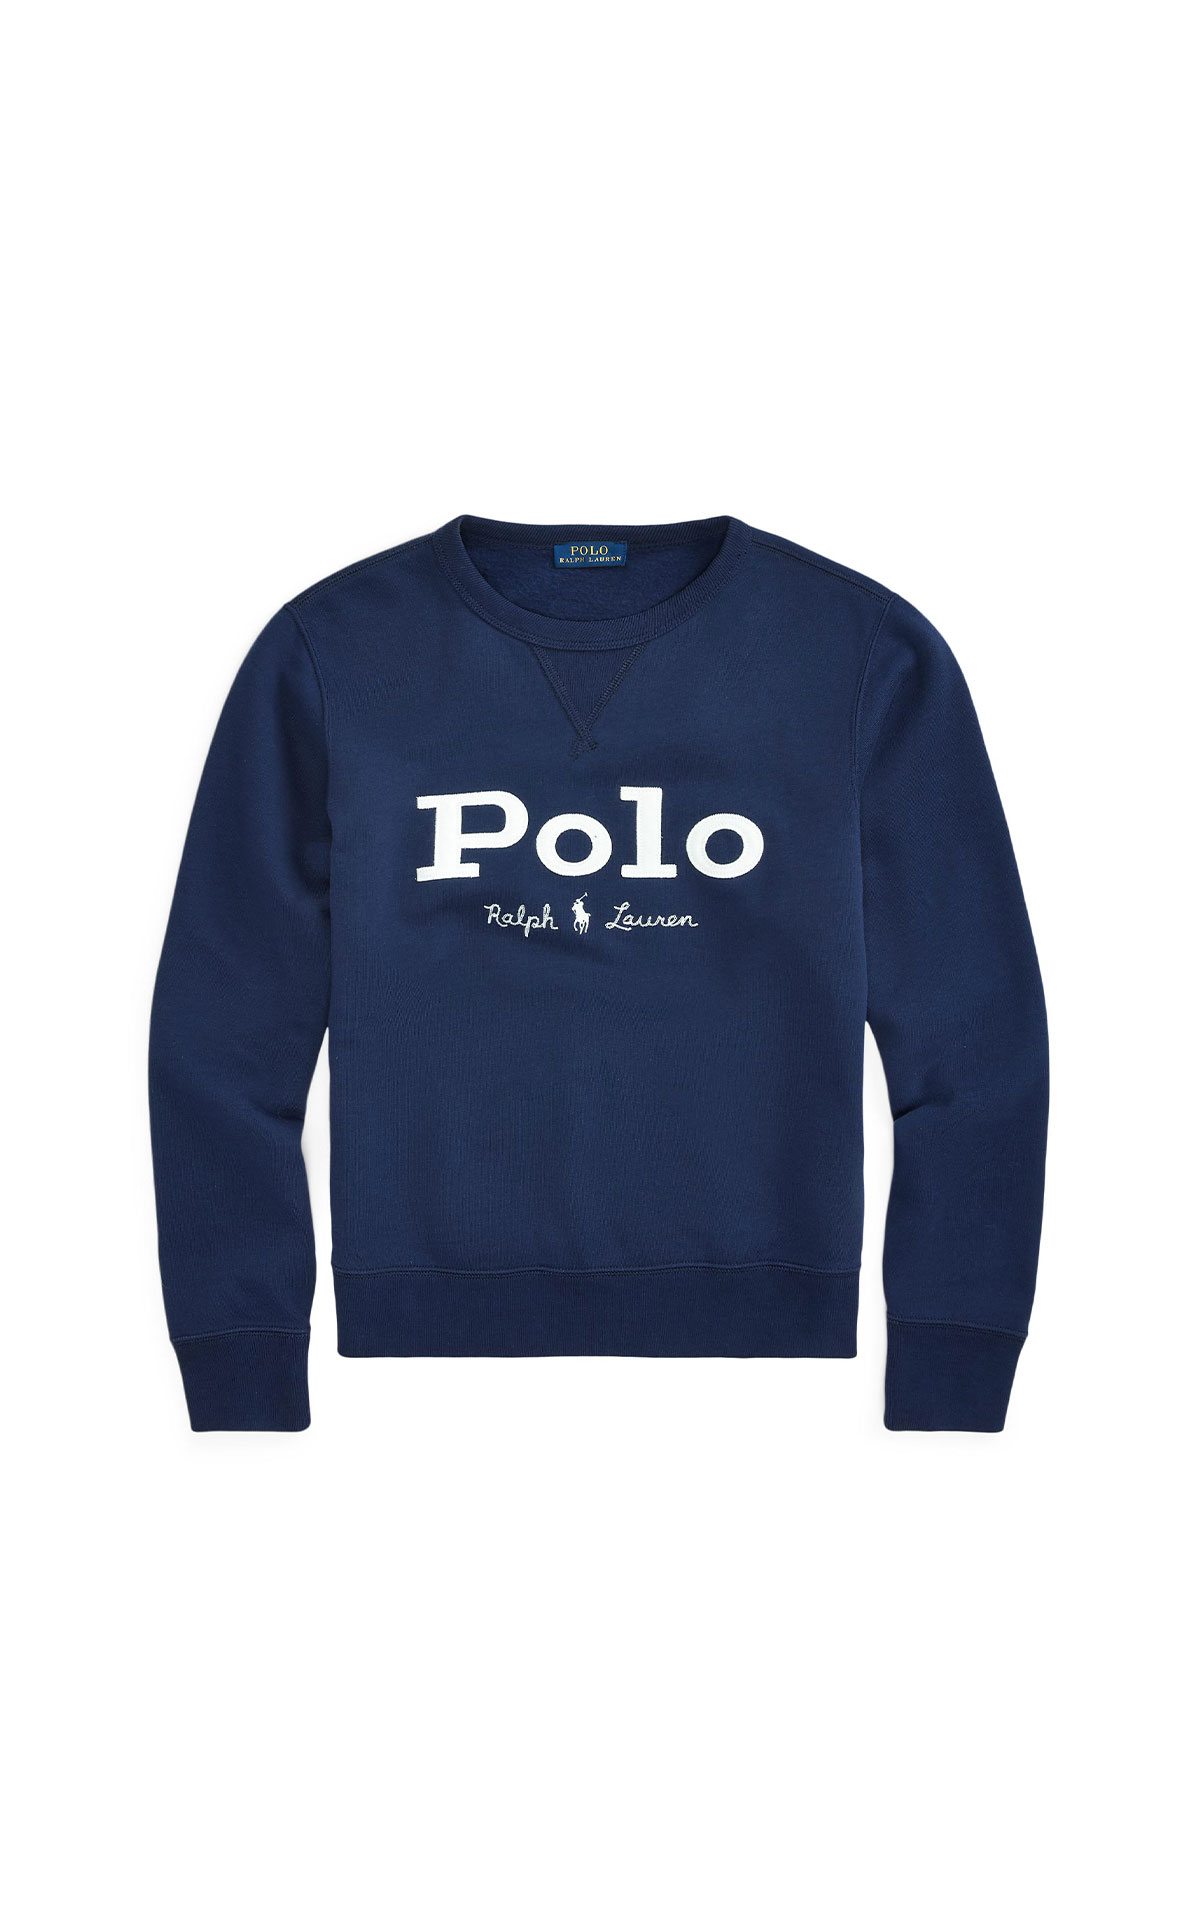 Polo Ralph Lauren Fleece sweatshirt logo from Bicester Village